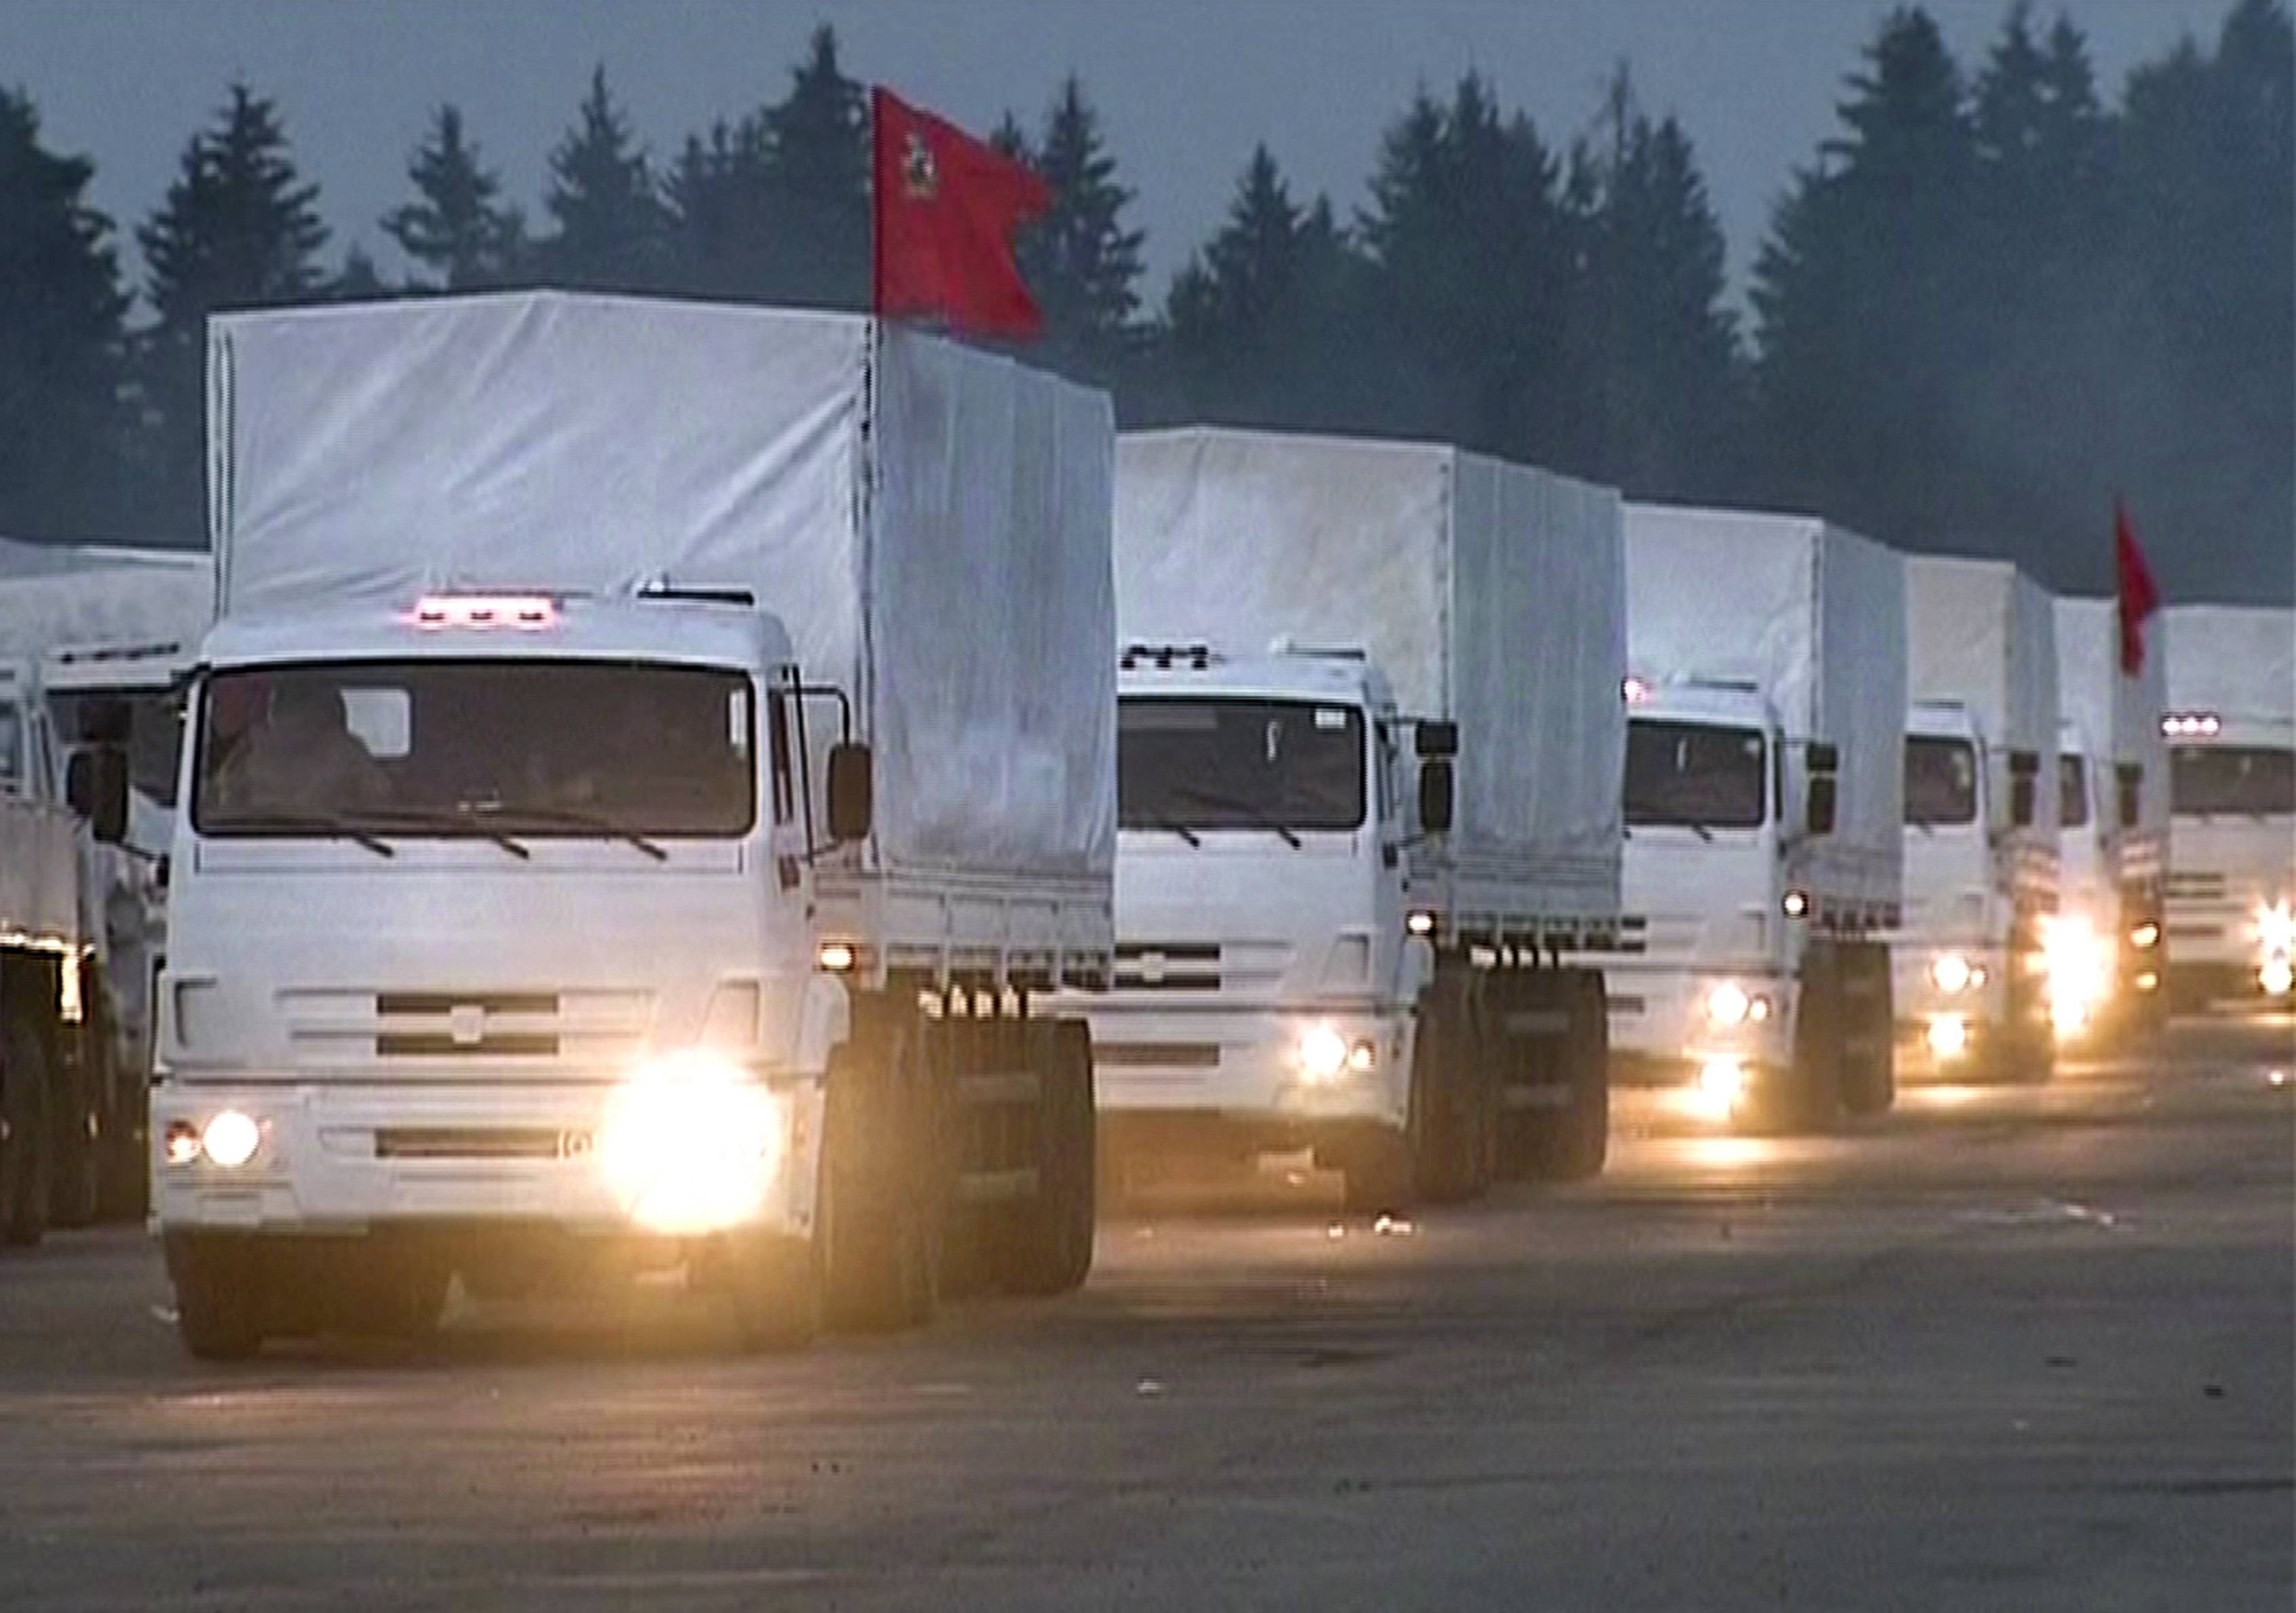 A convoy of 280 Russian trucks headed for eastern Ukraine early Tuesday, one day after agreement was reached on an international humanitarian relief mission.